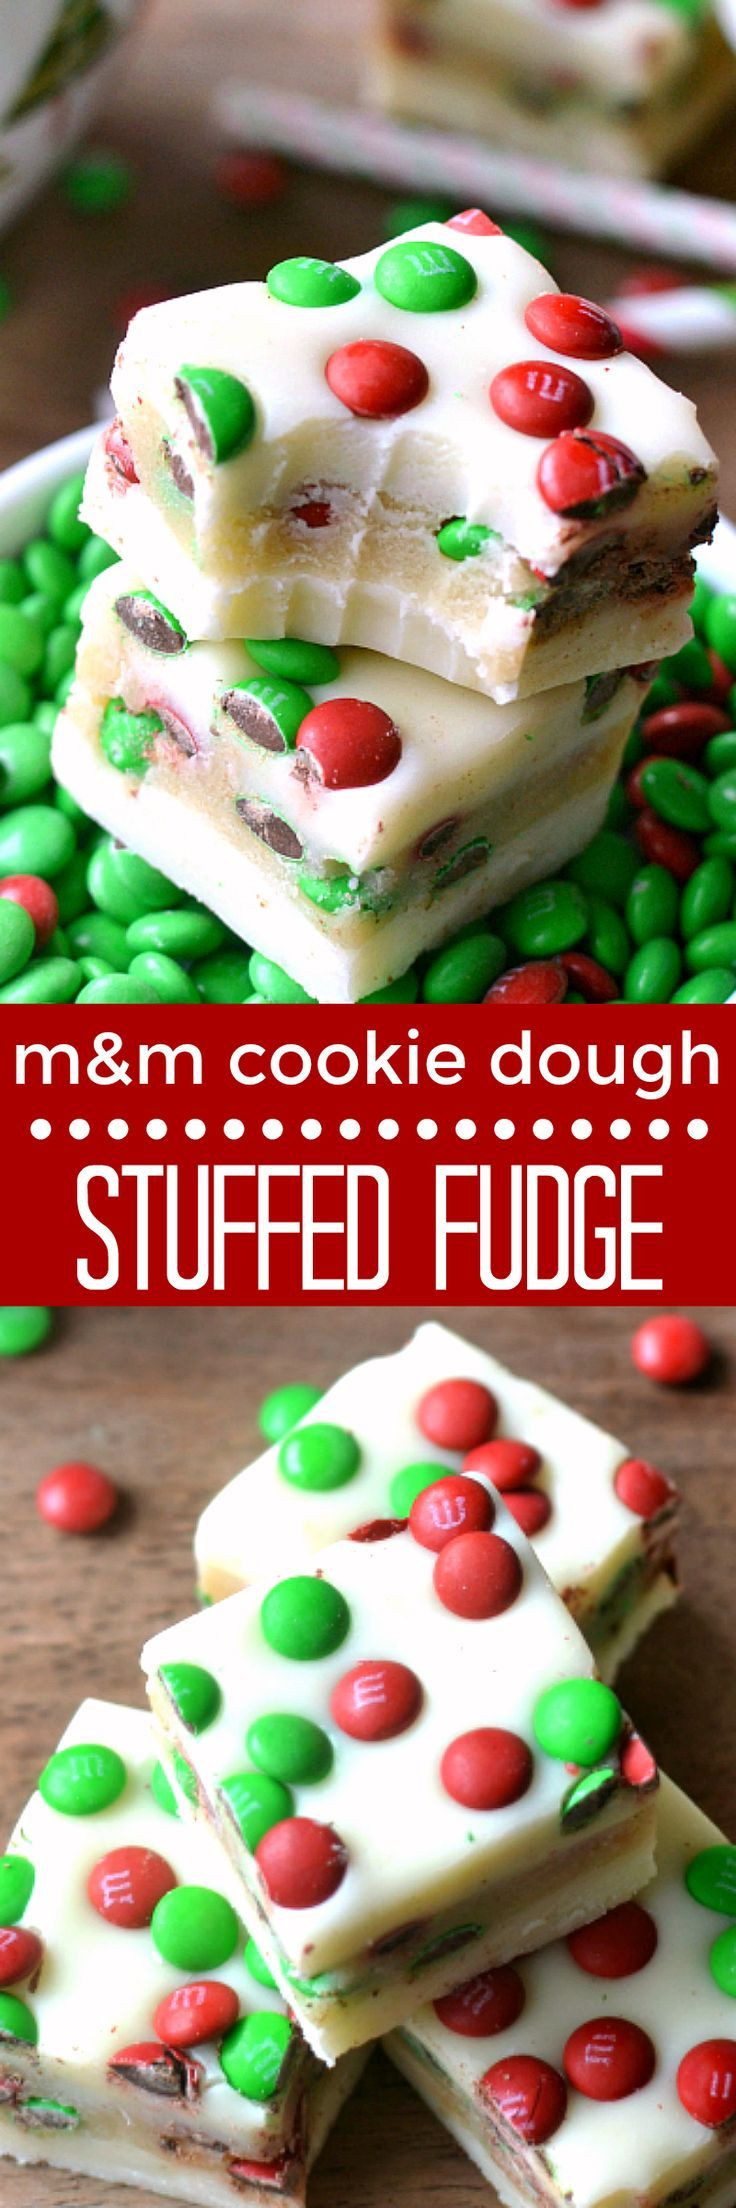 M&M Christmas Cookies Recipe  White Chocolate Fudge stuffed with M&M cookie dough and